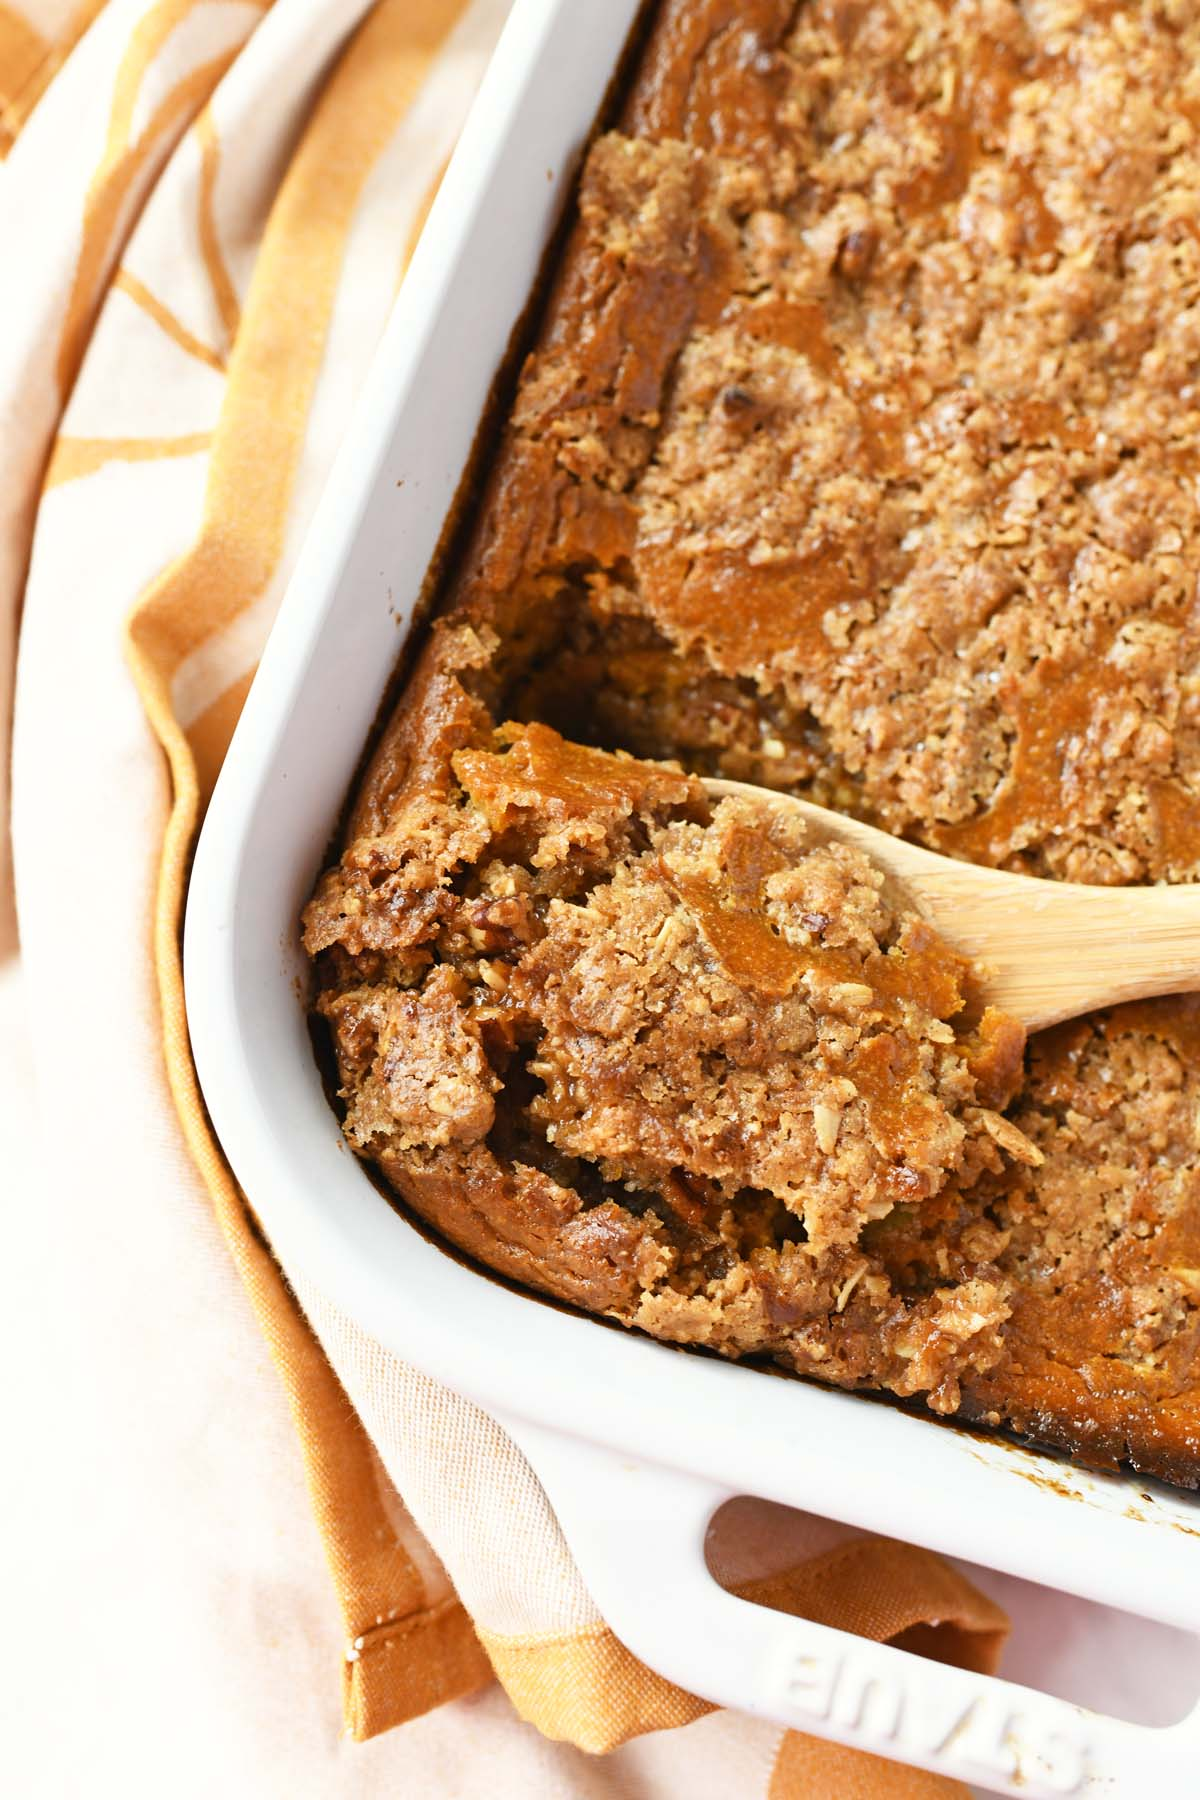 Pumpkin Crisp in a white pan with a wooden spoon.